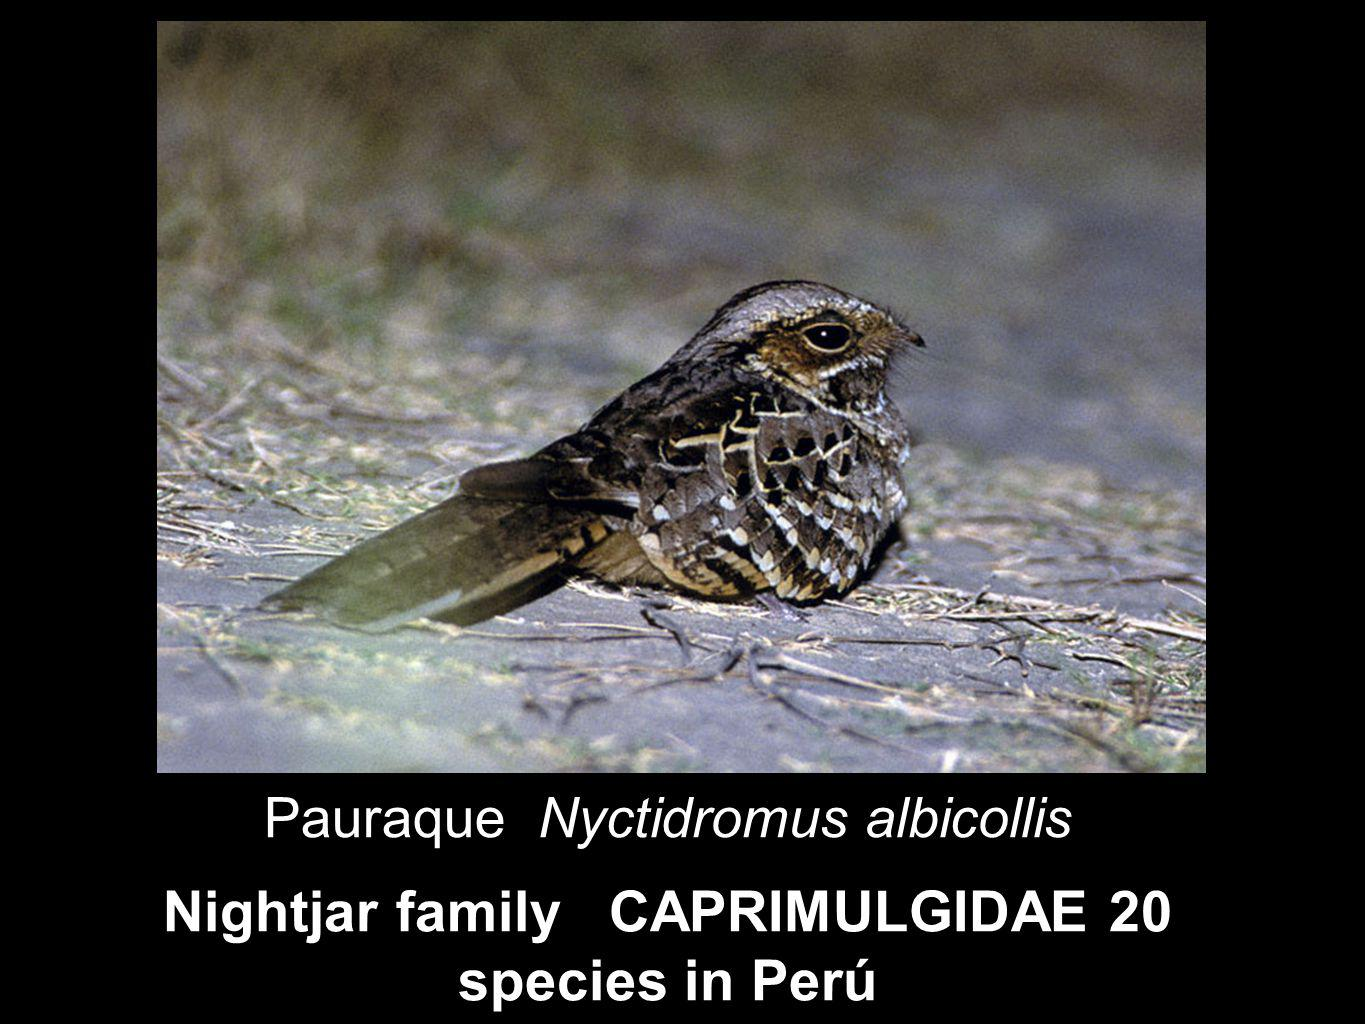 Nightjar family CAPRIMULGIDAE 20 species in Perú Pauraque Nyctidromus albicollis